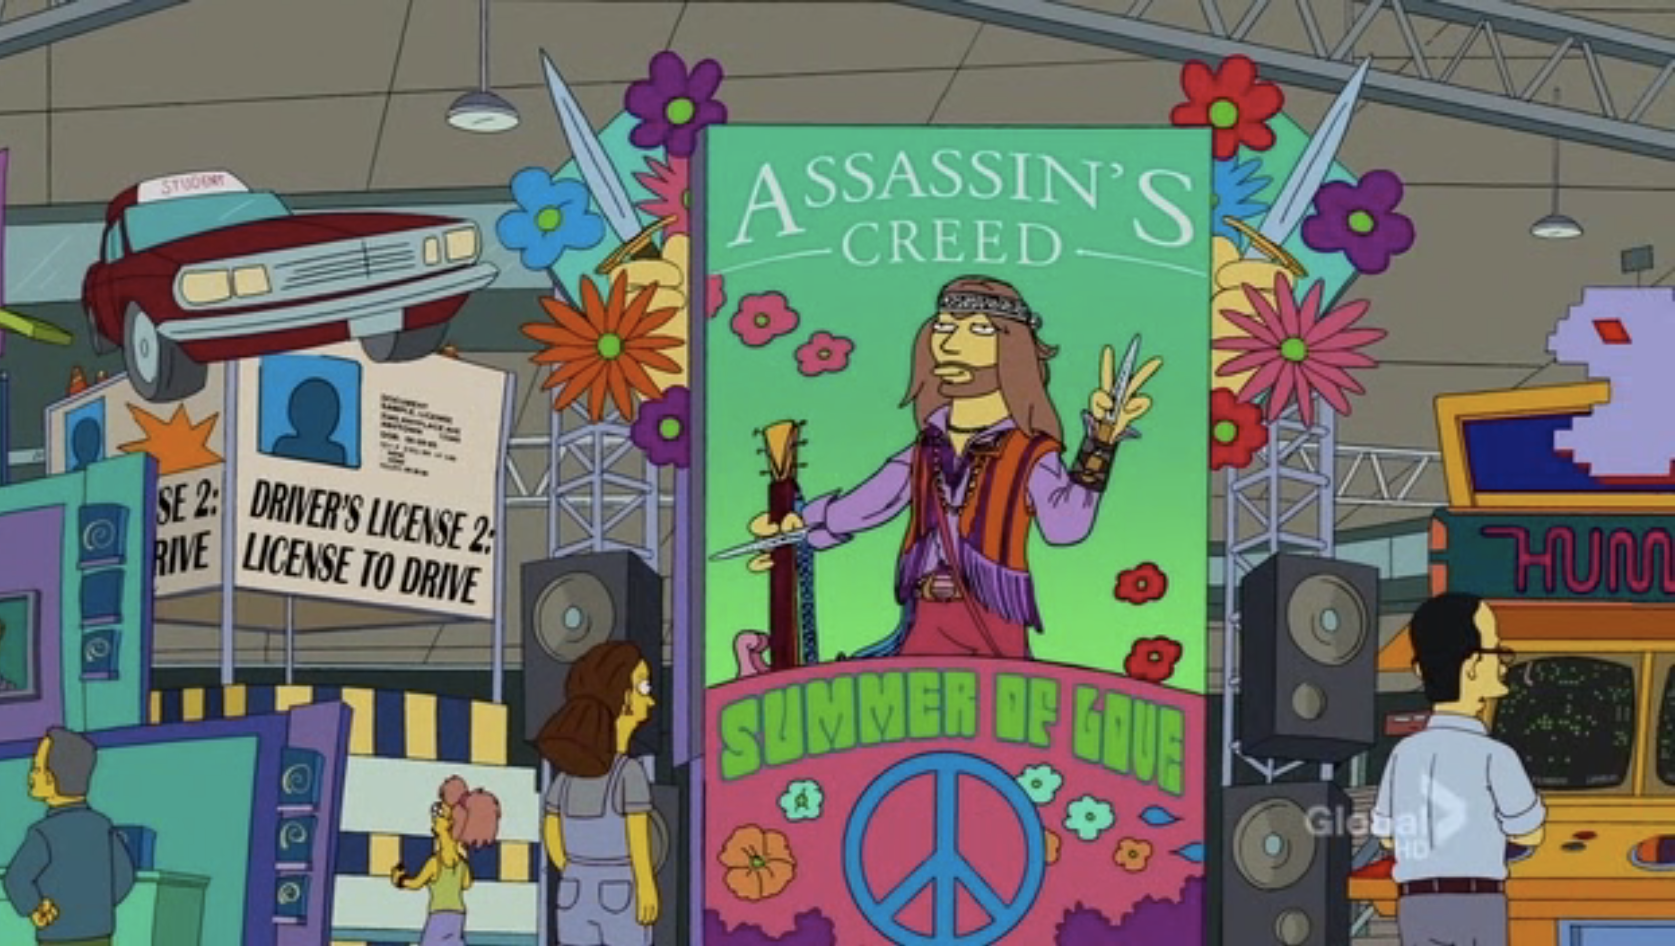 The Simpsons Assassinscreedsummoeroflove Poster For Fictional Assassins Creed Sequel